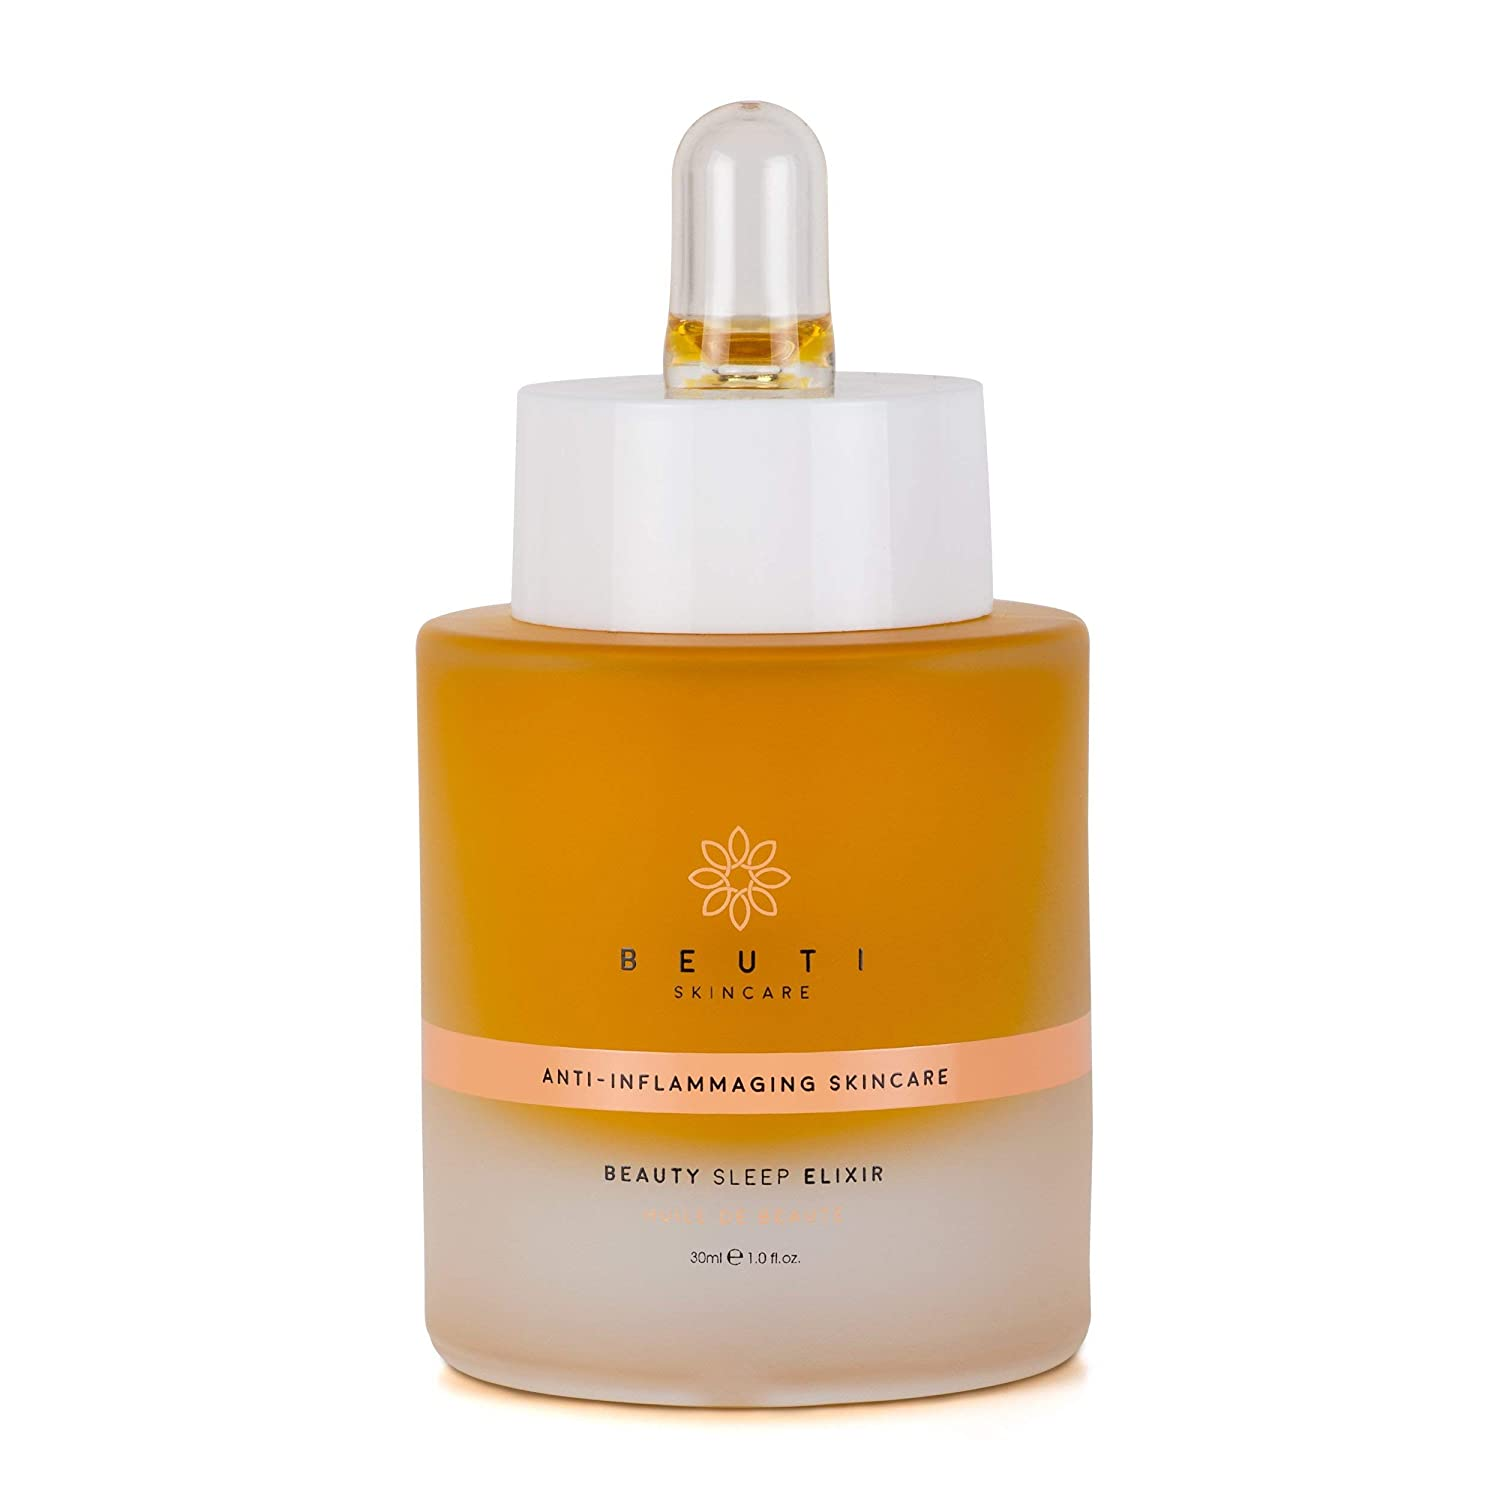 Beuti Skincare Beauty Sleep Elixir Facial Oil 30ml